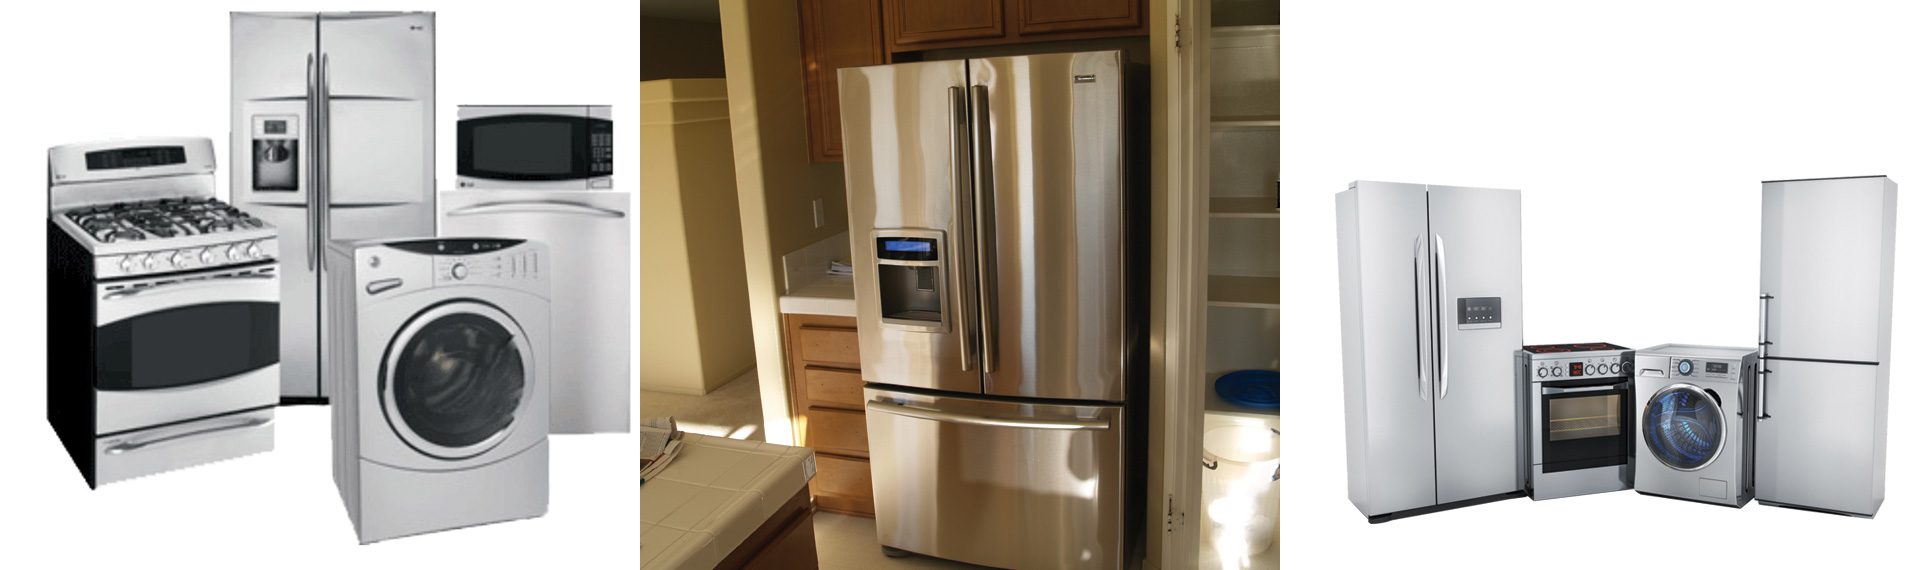 Appliance Care Grove City OH